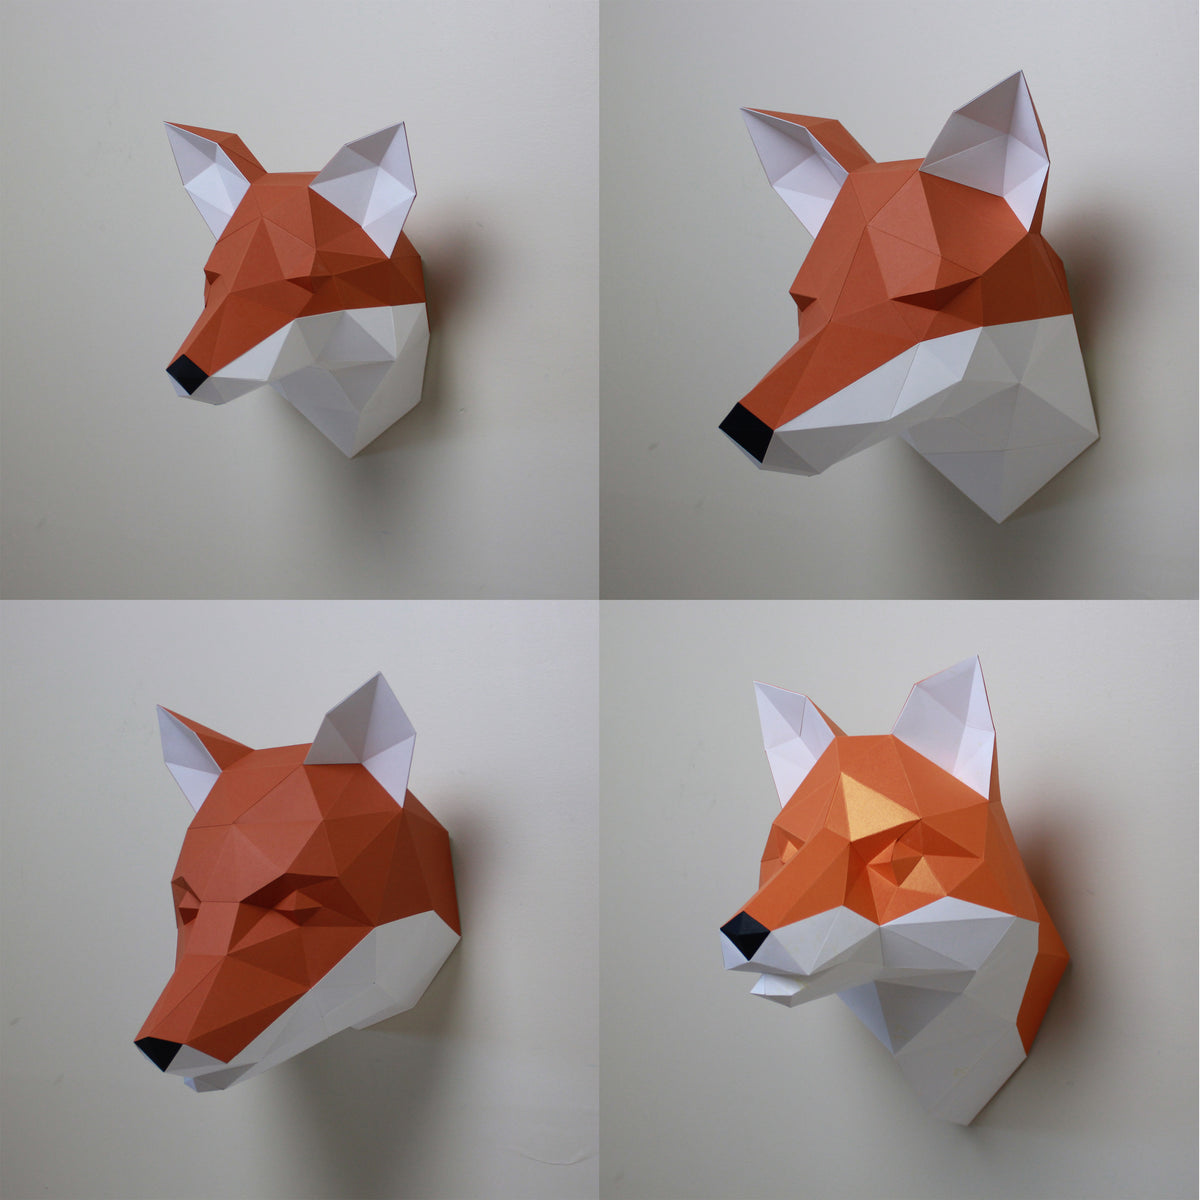 Papercraft Animal Design - A behind the scenes look at Cecilia the Fox